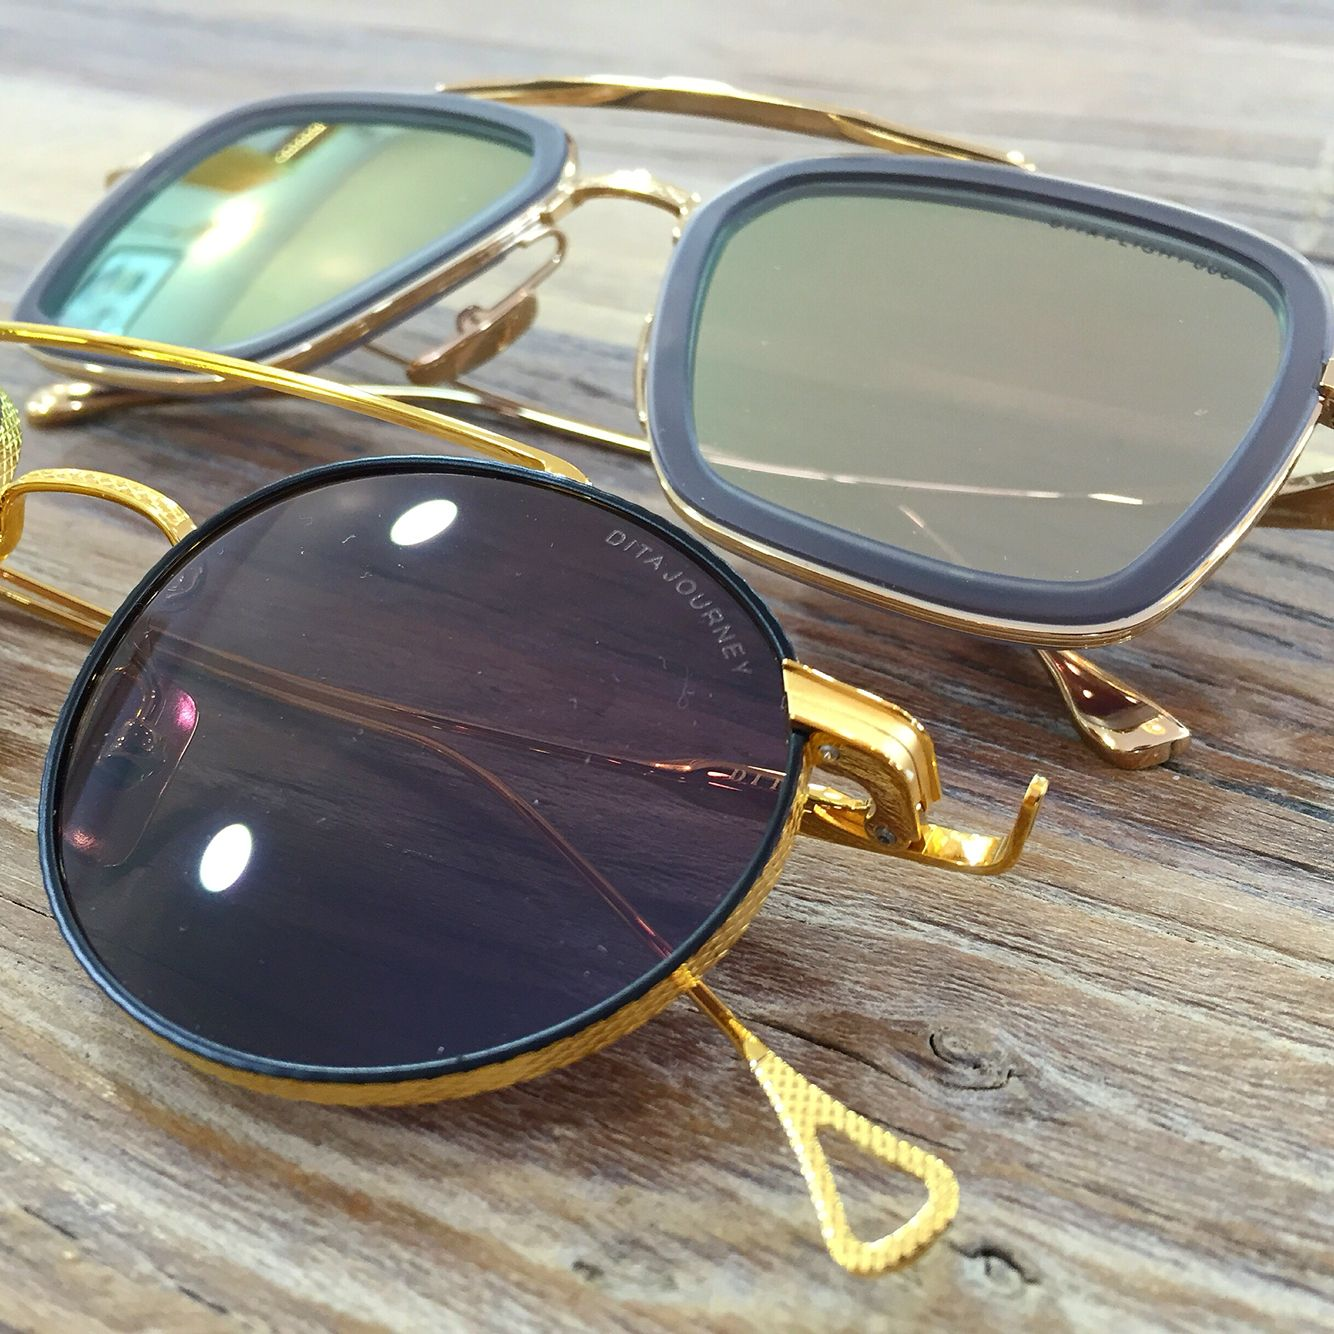 bb226114adc Arrivage Dita du jour   au menu la Journey 18k et la Flight 006 12k   sunglasses  handmade  japan  design  usa